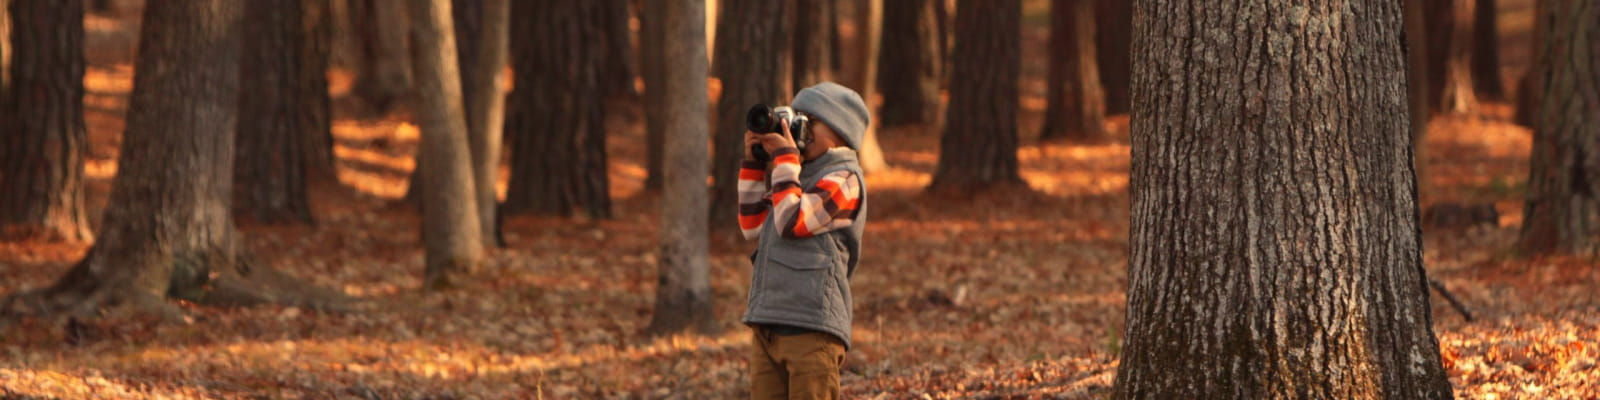 enfant qui prend la forêt en photo